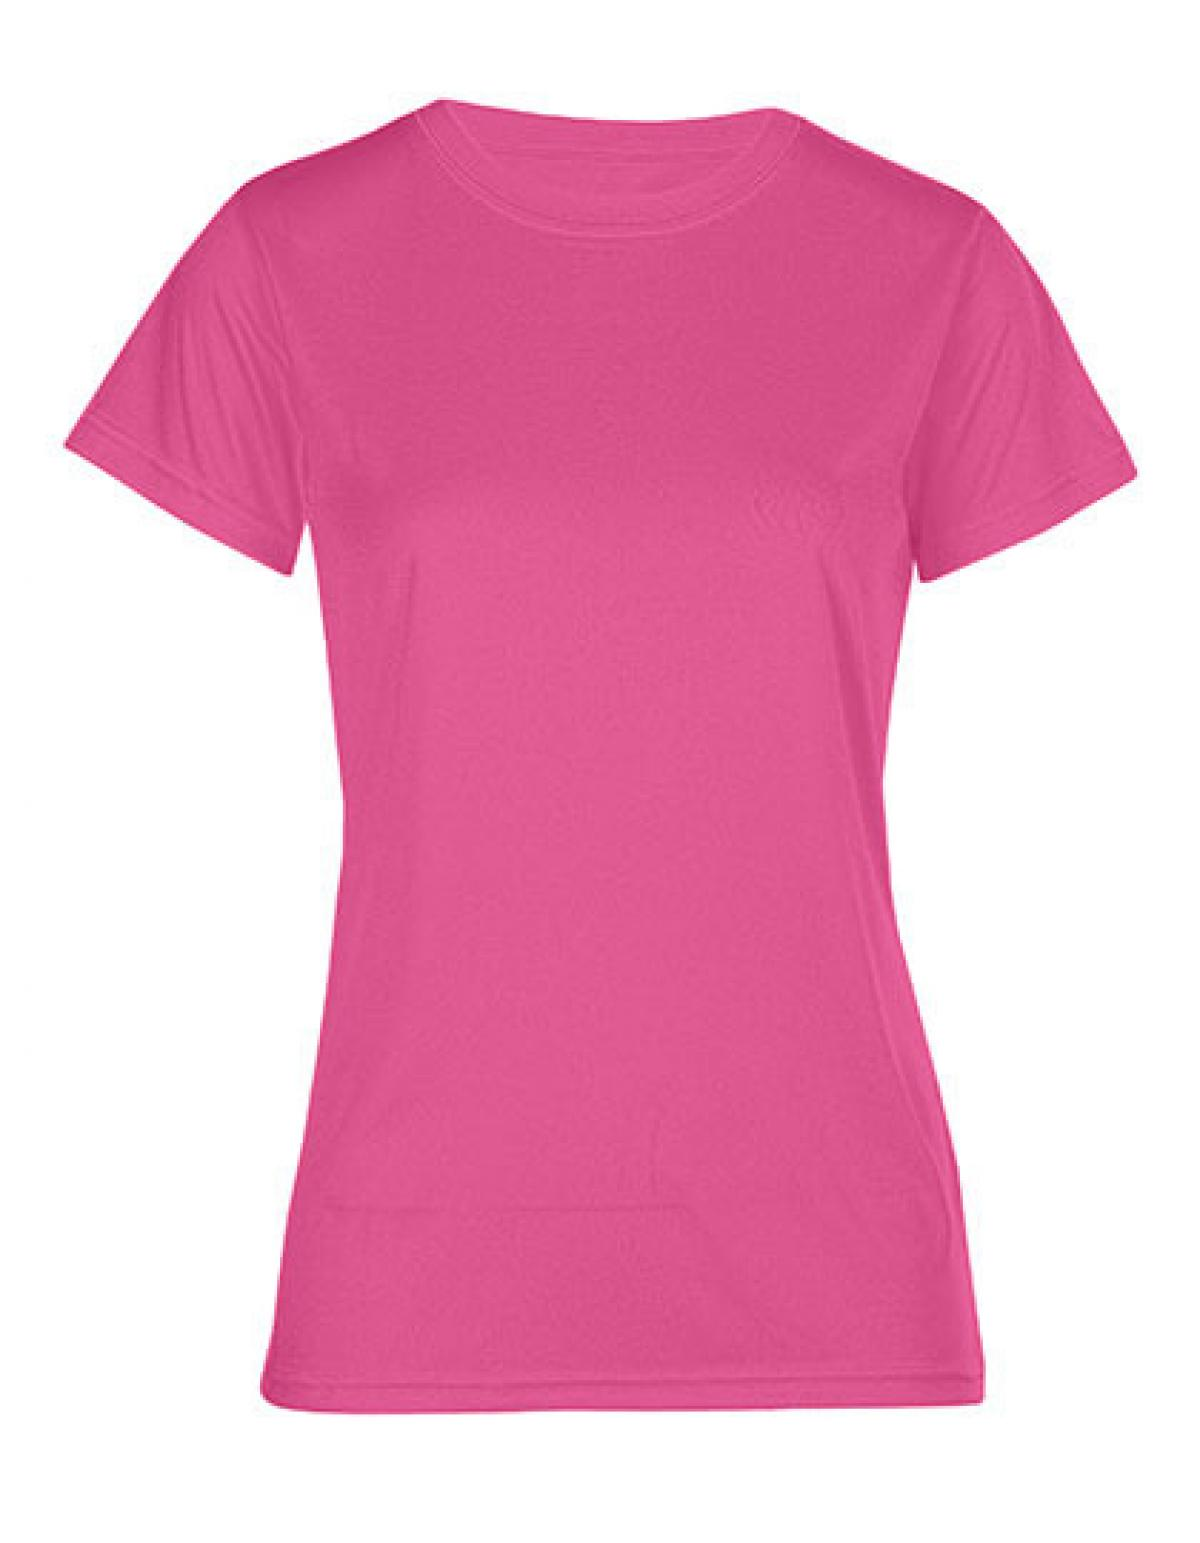 damen performance sport t shirt uv schutz promodoro ebay. Black Bedroom Furniture Sets. Home Design Ideas